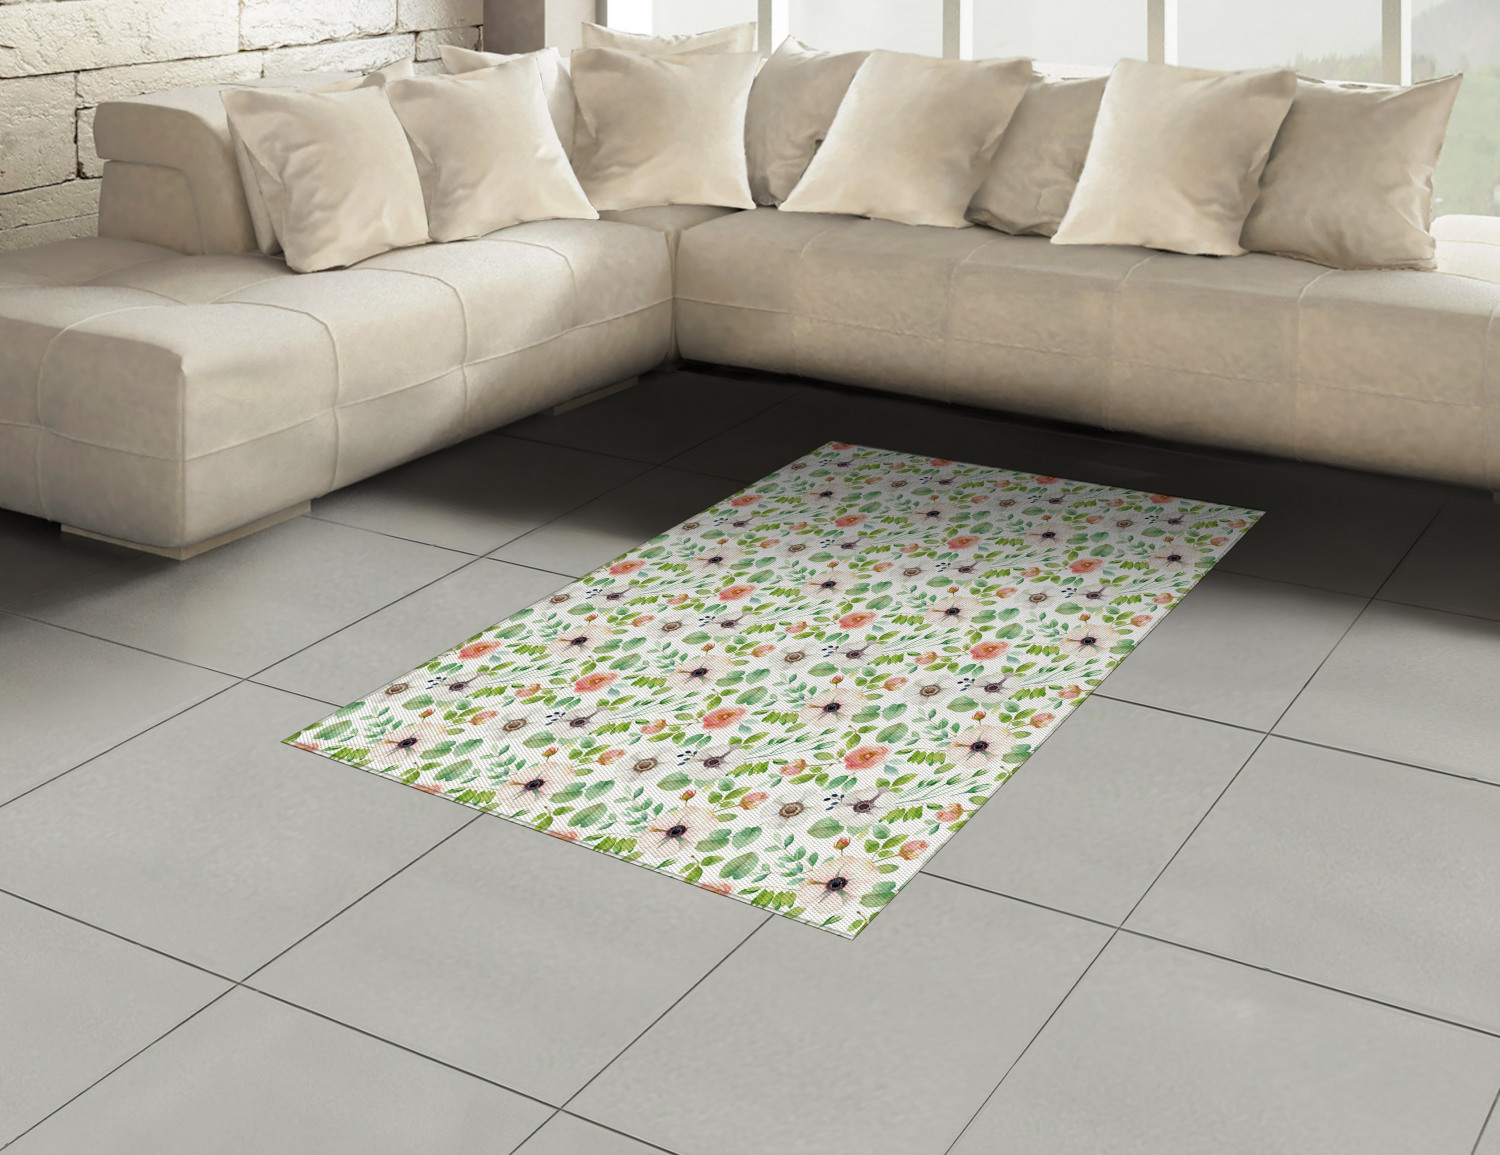 Anemone-Flower-Area-Rug-Decor-Flat-Woven-Accent-Rug-Home-Decor-2-Sizes-Ambesonne thumbnail 22